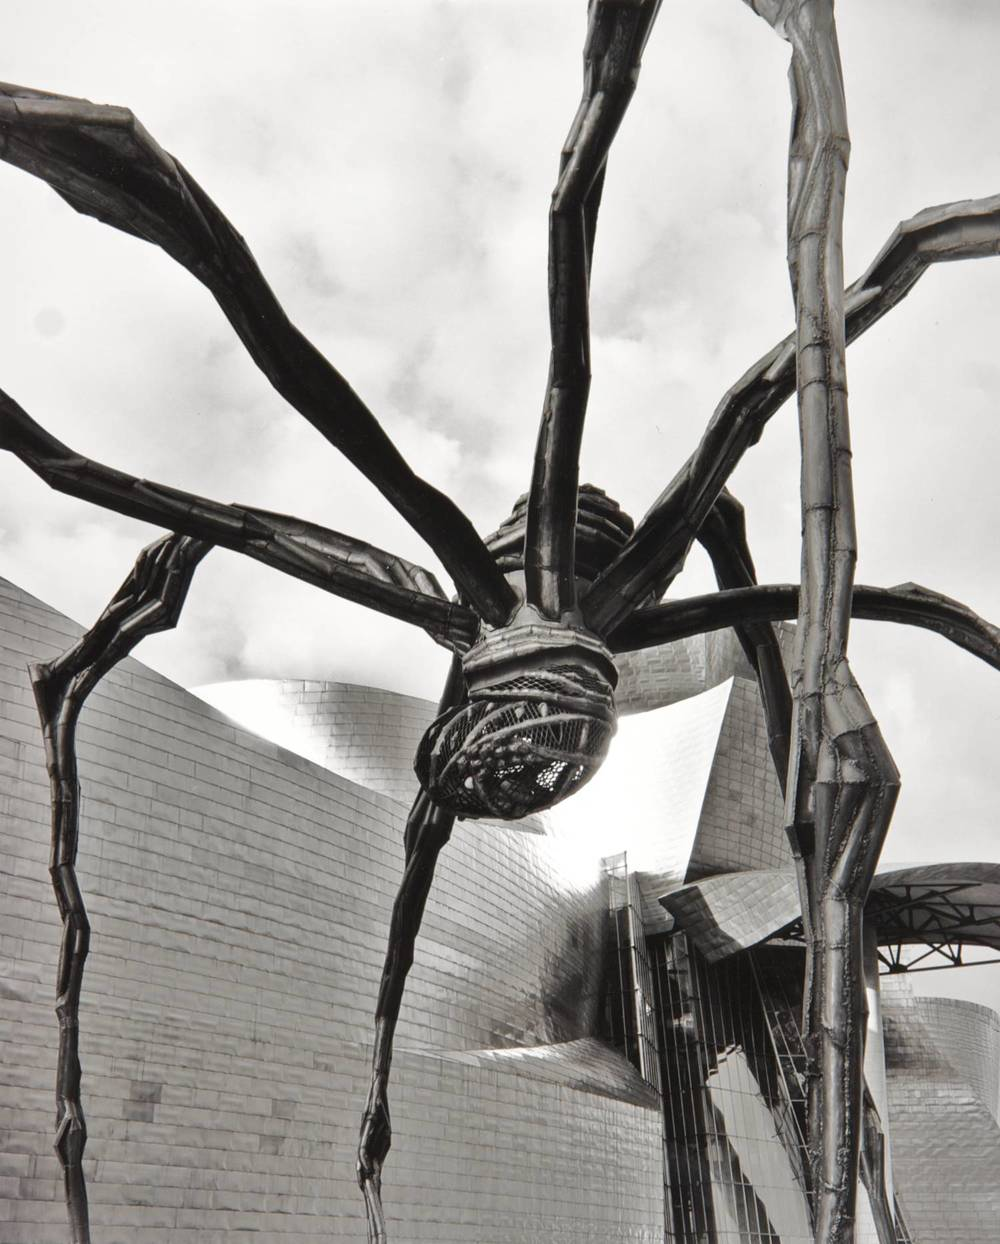 Maman Detail (Bilbao, Spain)